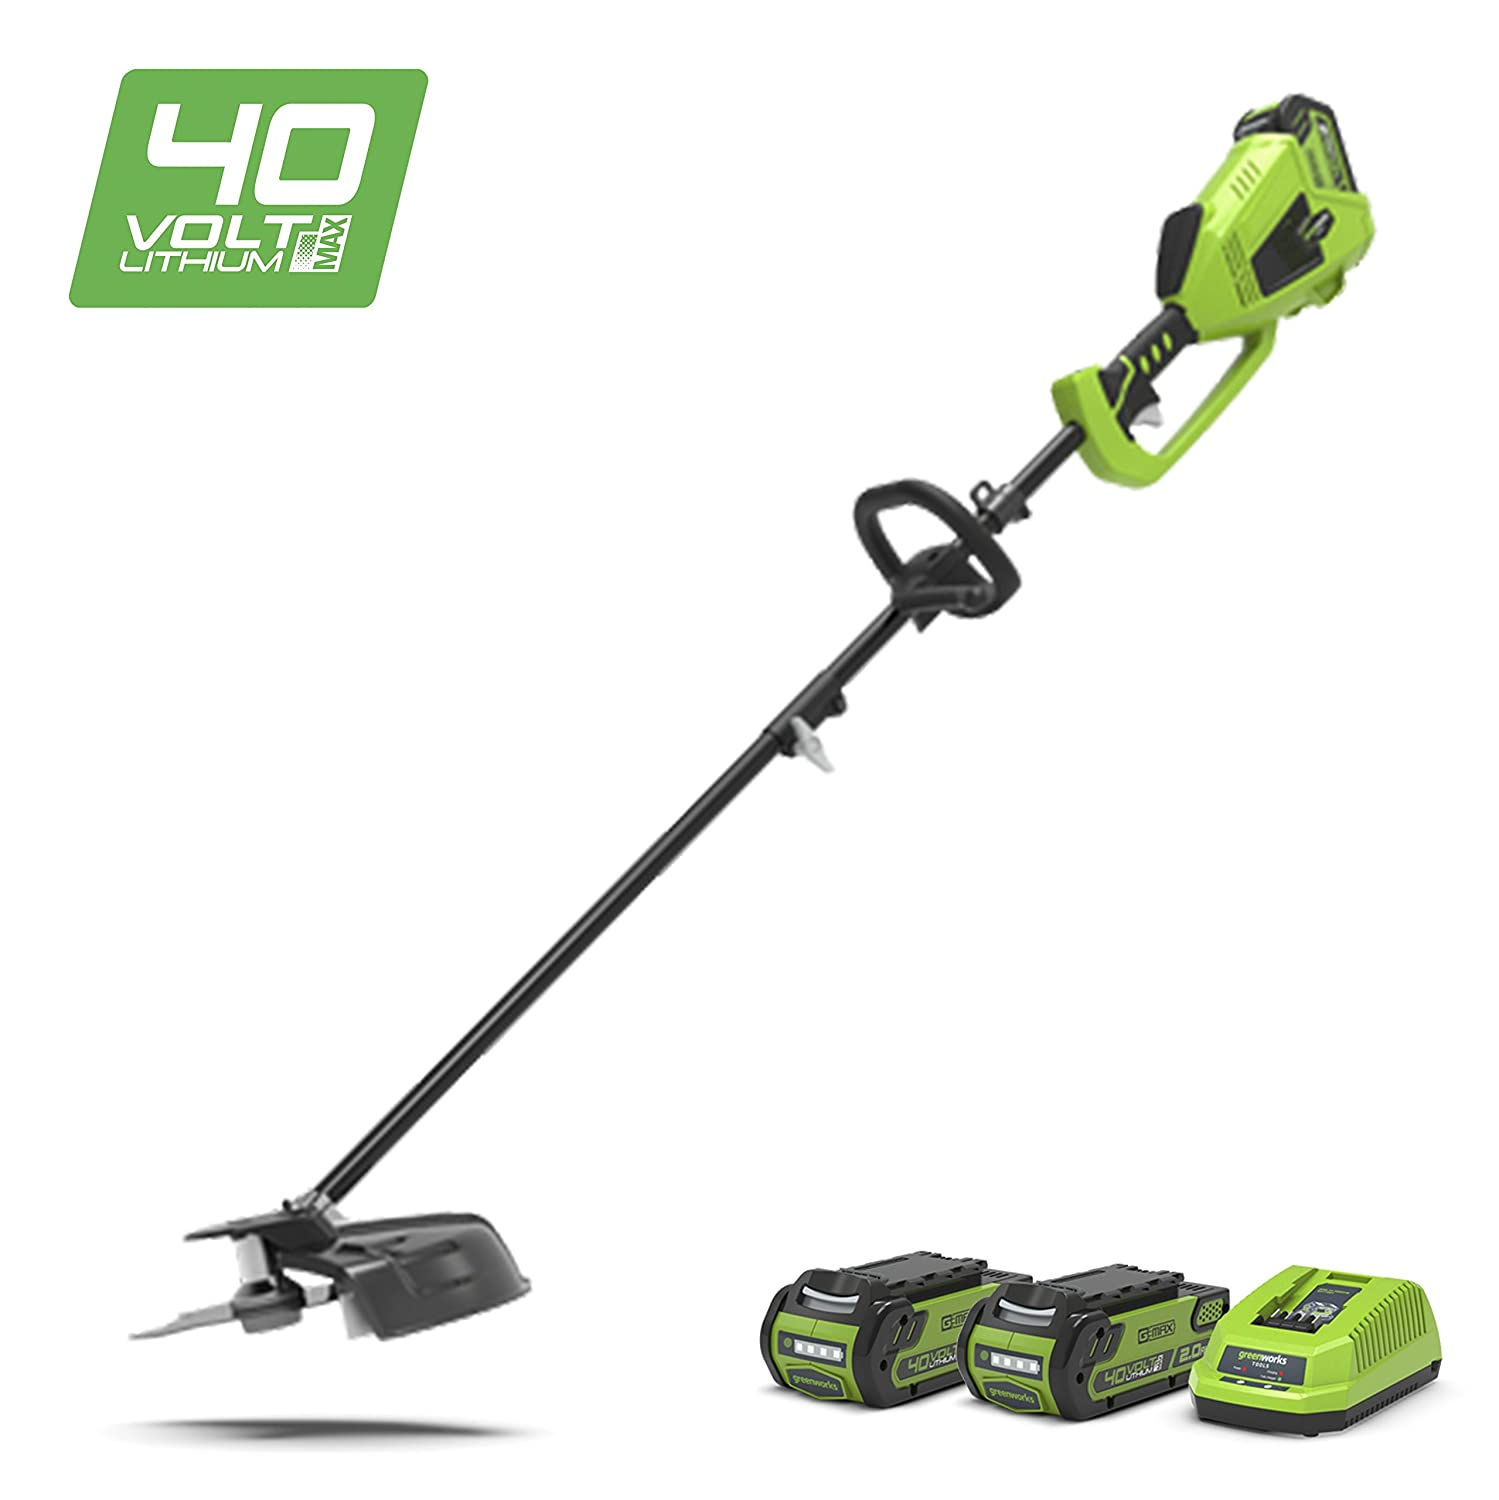 Greenworks 40V Cordless Brushless Trimmer 2-in-1 (Top-mount motor) - Battery and charger not included - 1301507 GD40BC (Art No: 1301507)